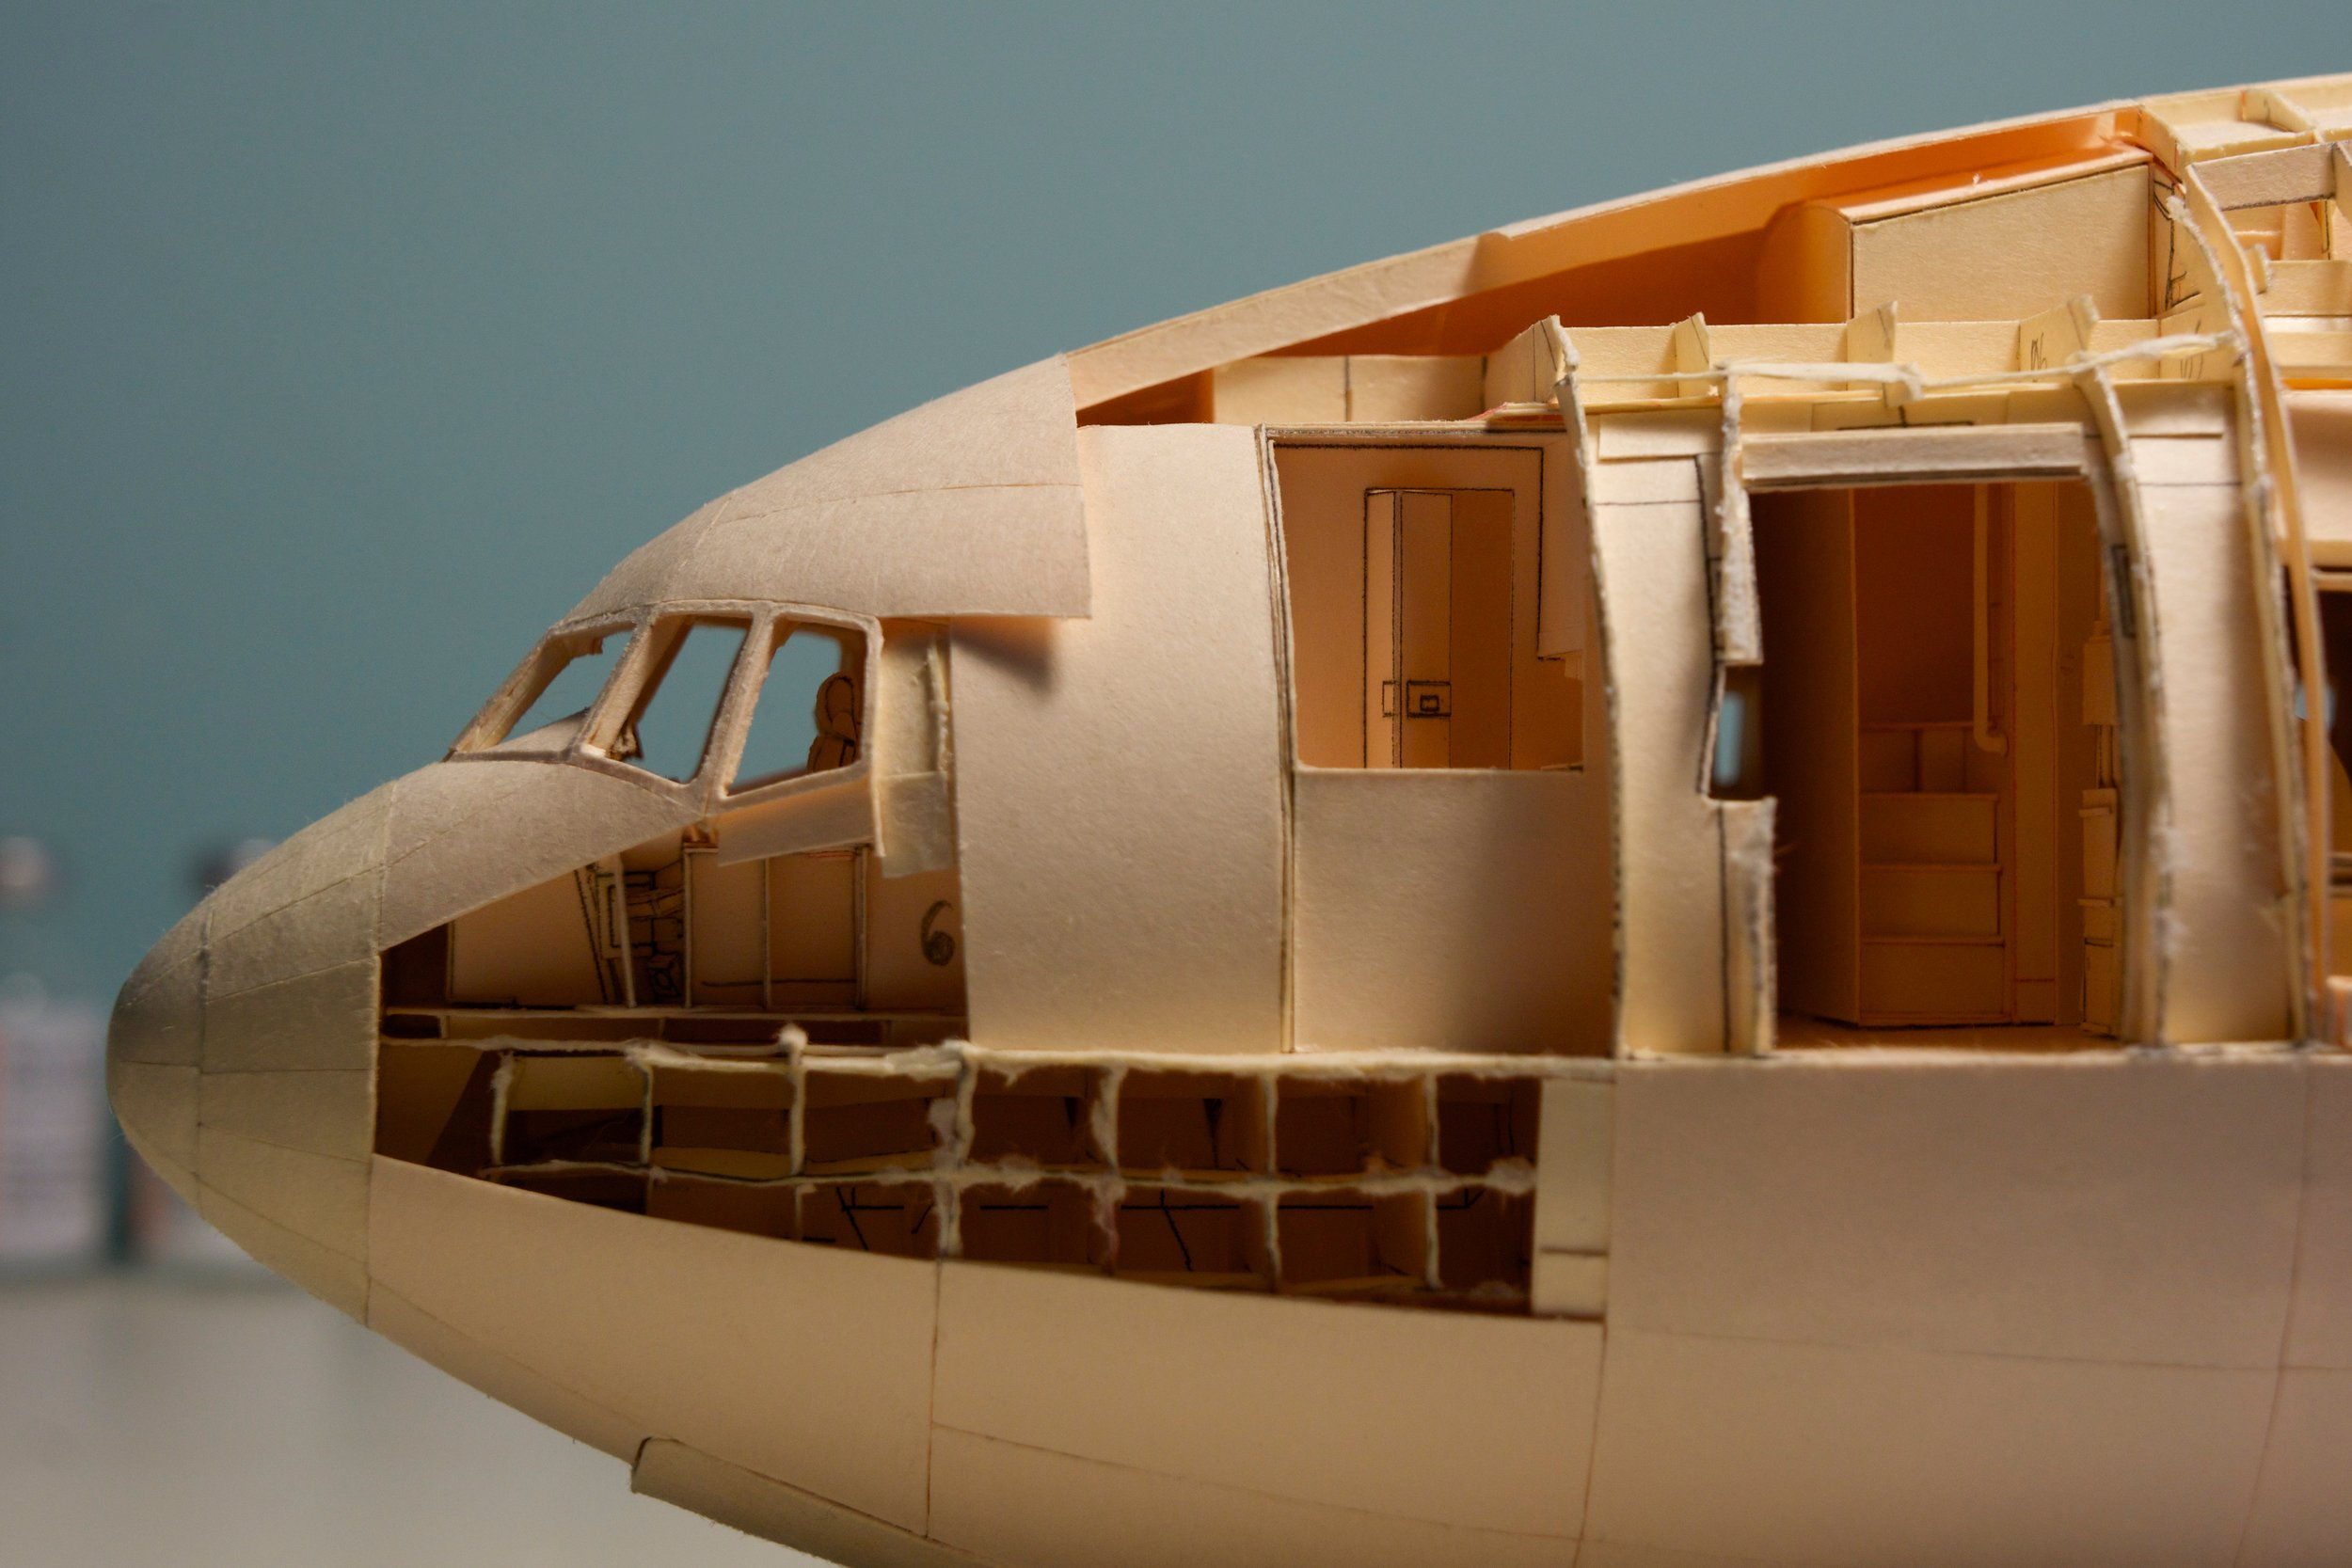 A look into the various cabin features in the nose section